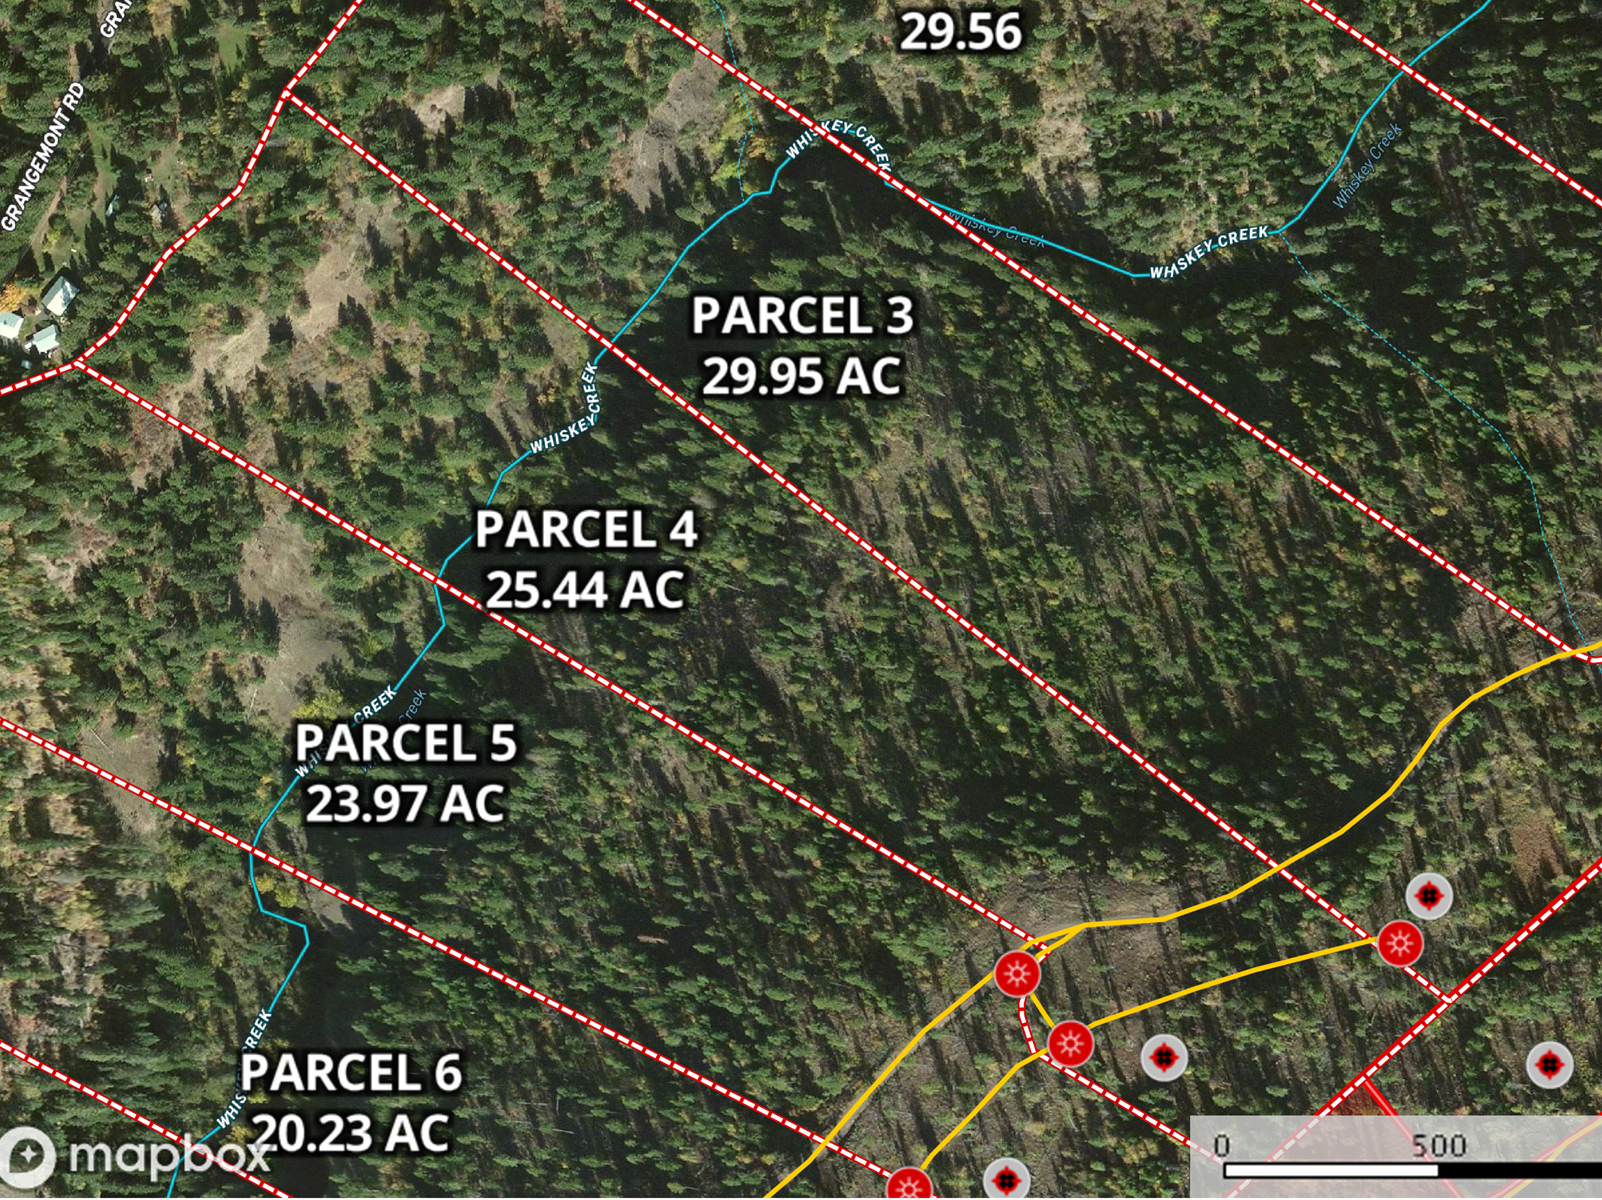 Building Site, Hunting timberland Property near Orofino, ID